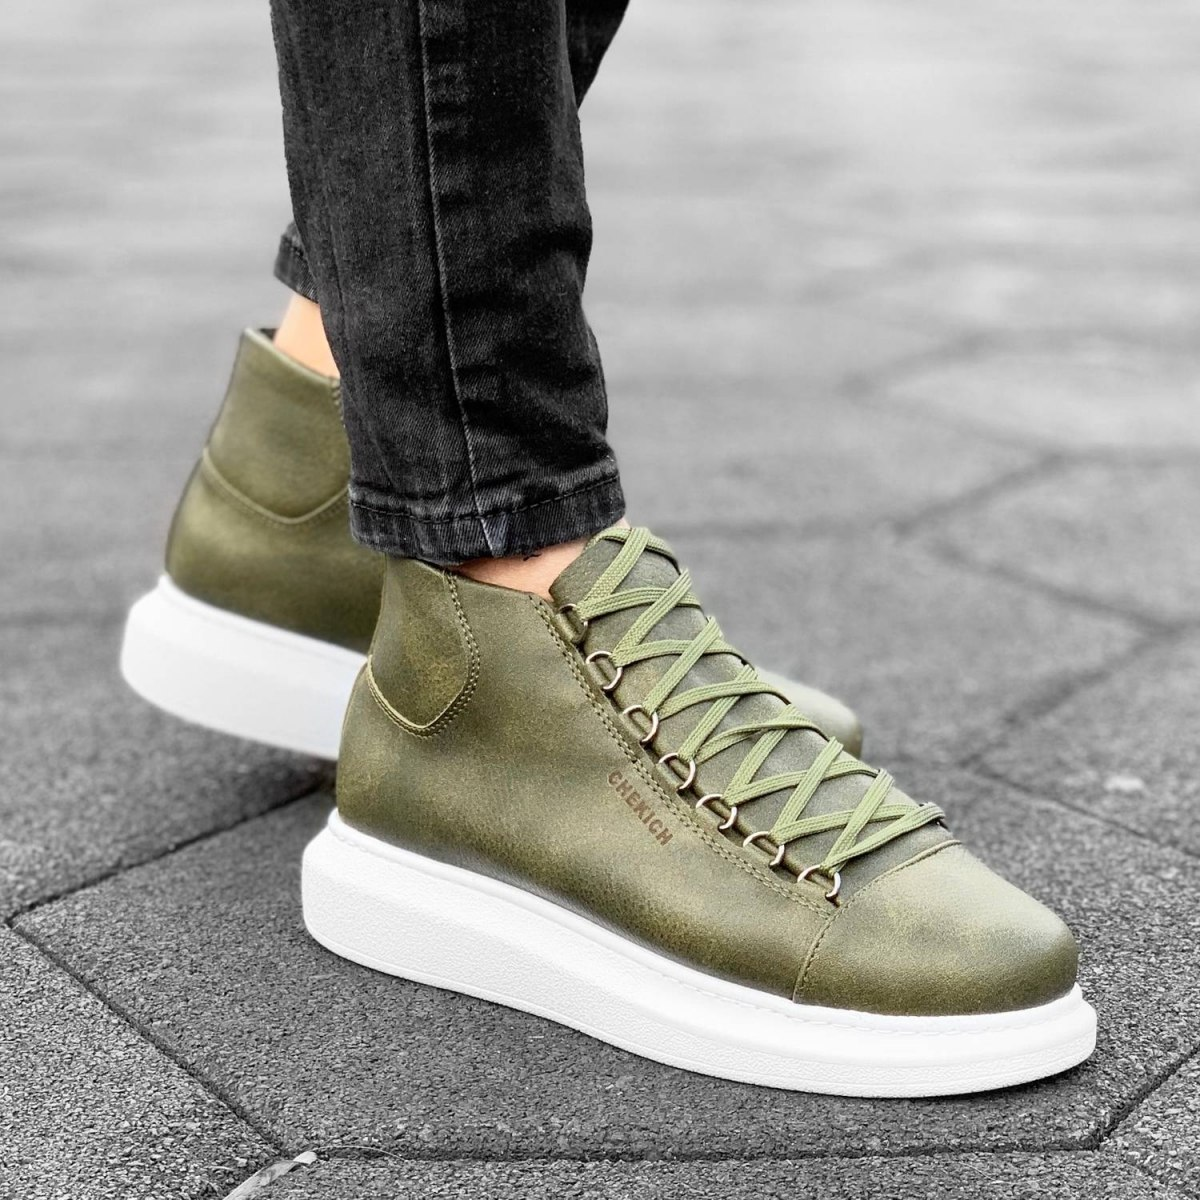 Boosted-Sole High Top Sneakers in Khaki